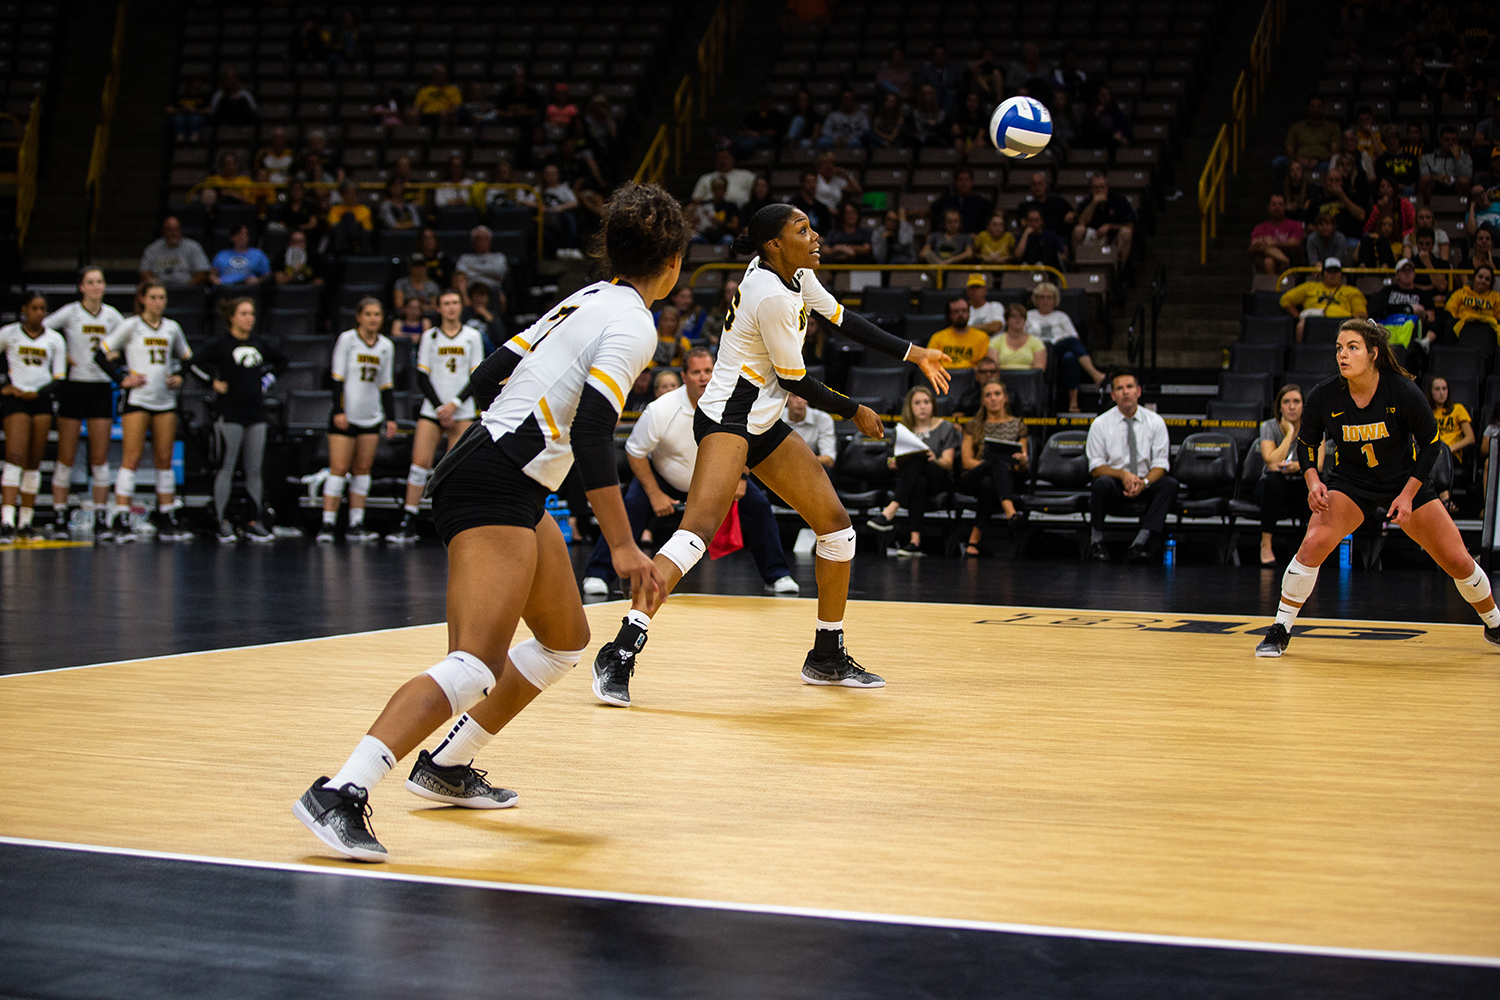 Taylor Louis keeps the ball in play during Iowa's match against Michigan at Carver-Hawkeye Arena on Sept. 23, 2018.